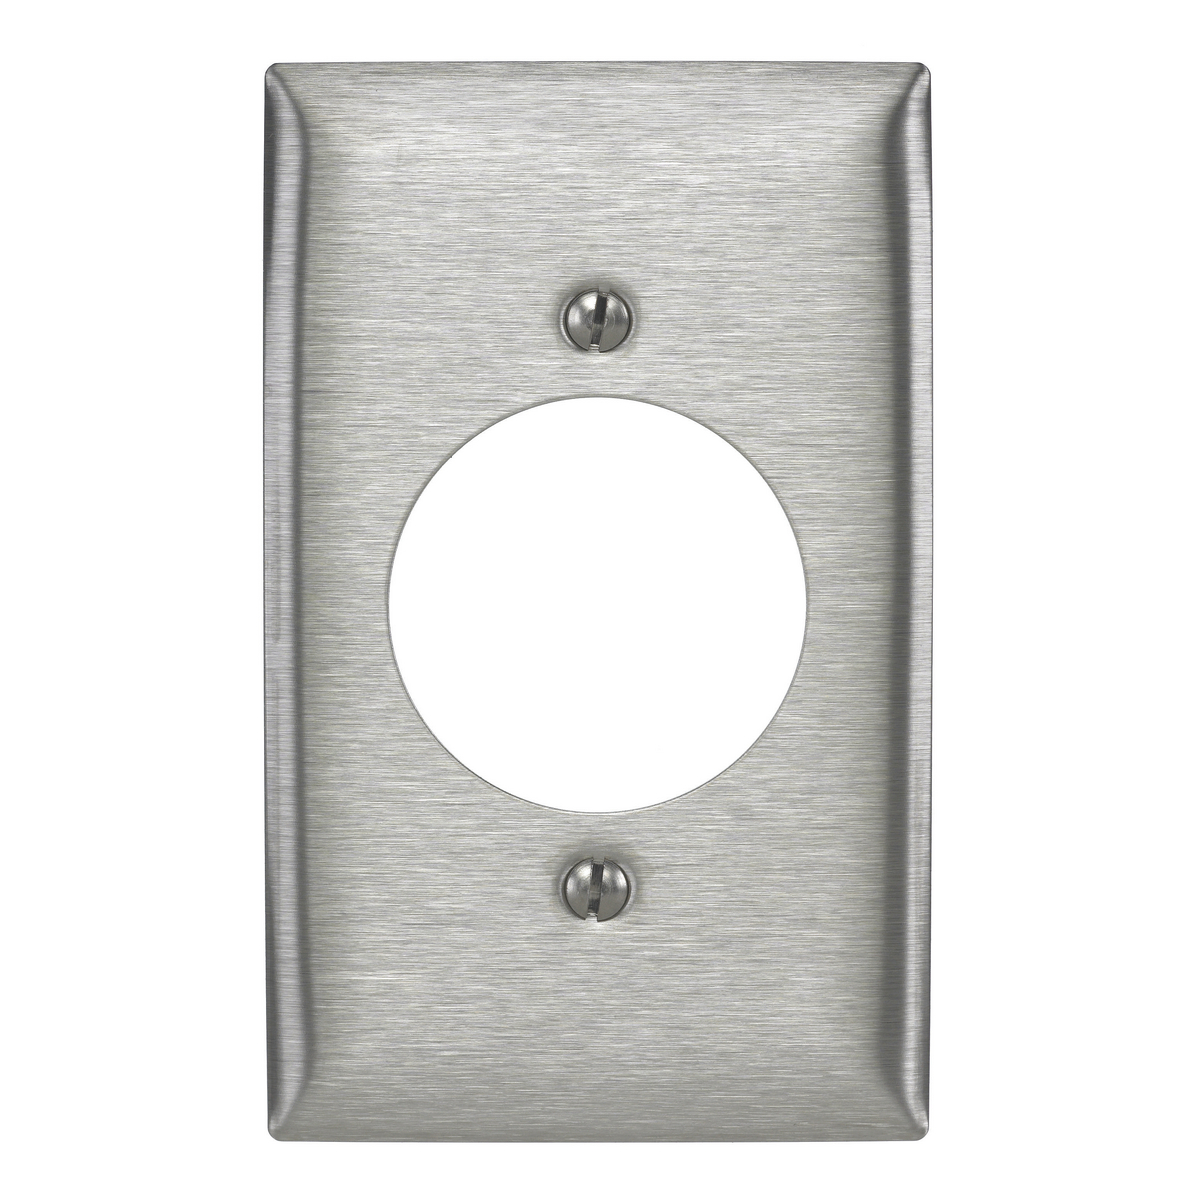 Hubbell SS725 1-Gang Stainless Steel 1-Single Receptacle Strap Mount Wallplate